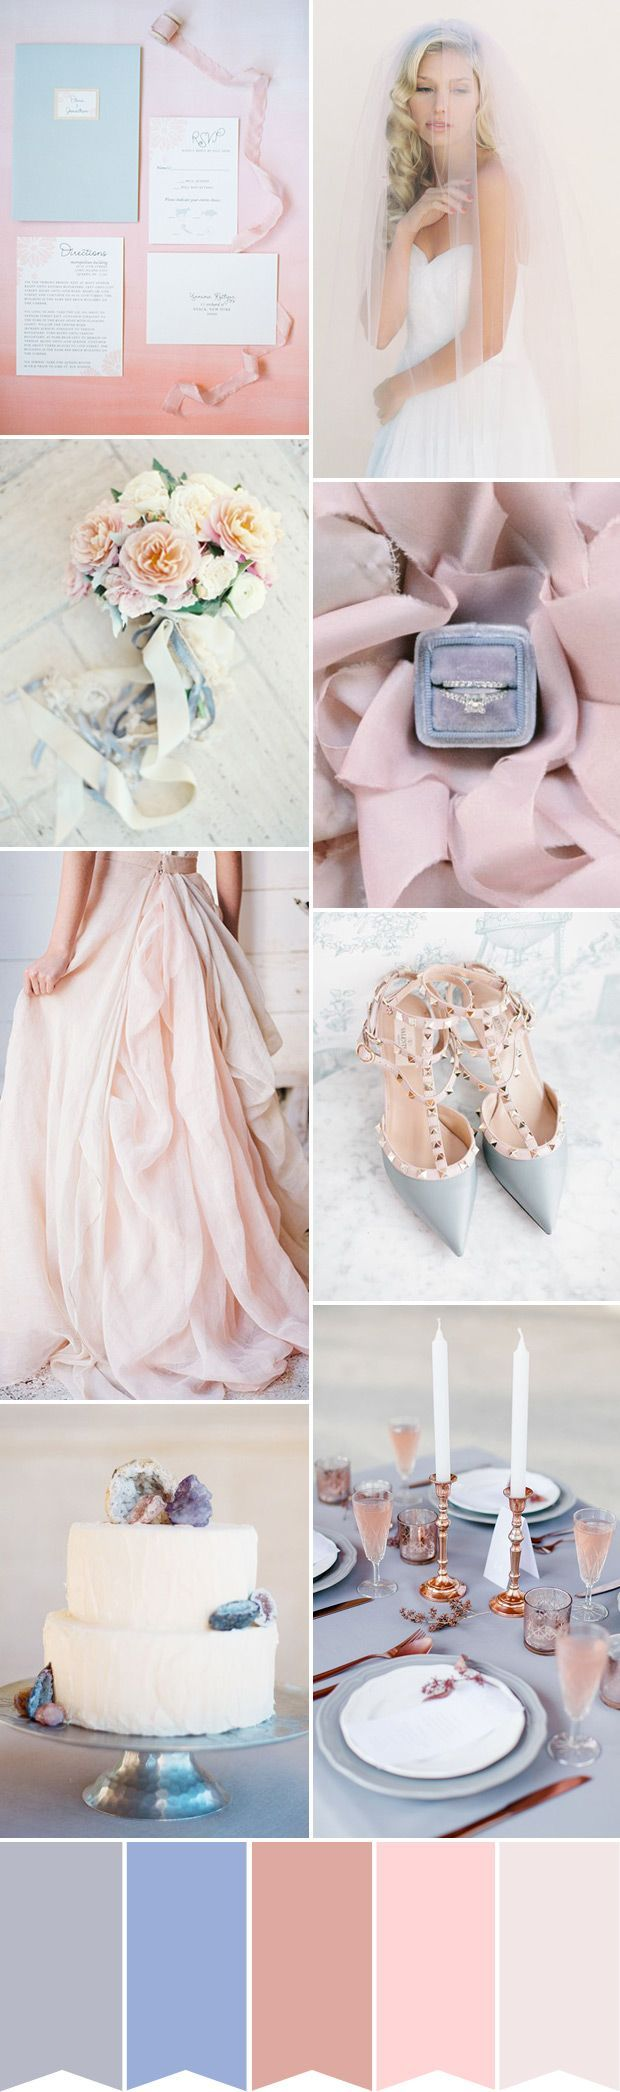 Pantone Color of the Year 2016 - A Rose Quartz and Serenity Wedding Palette | www.onefabday.com